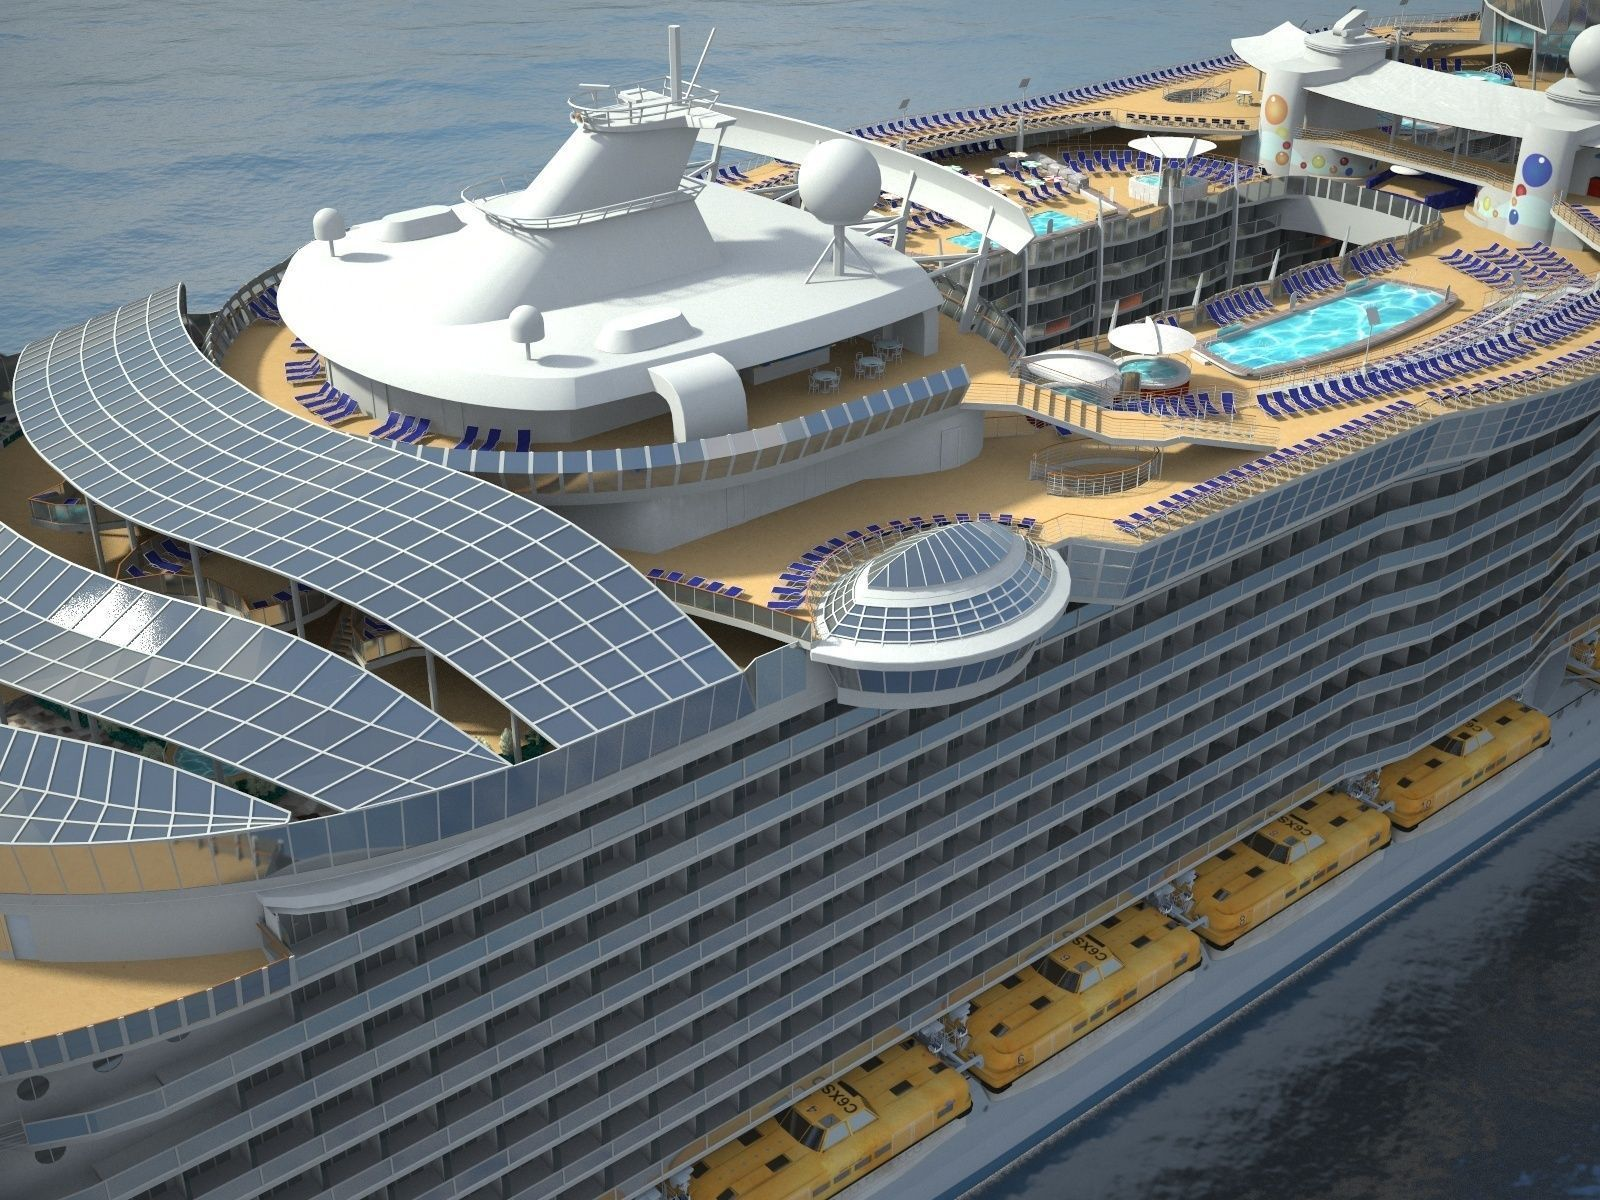 Oasis Of The Seas Cruise Ship 3D Model MAX OBJ 3DS FBX C4D